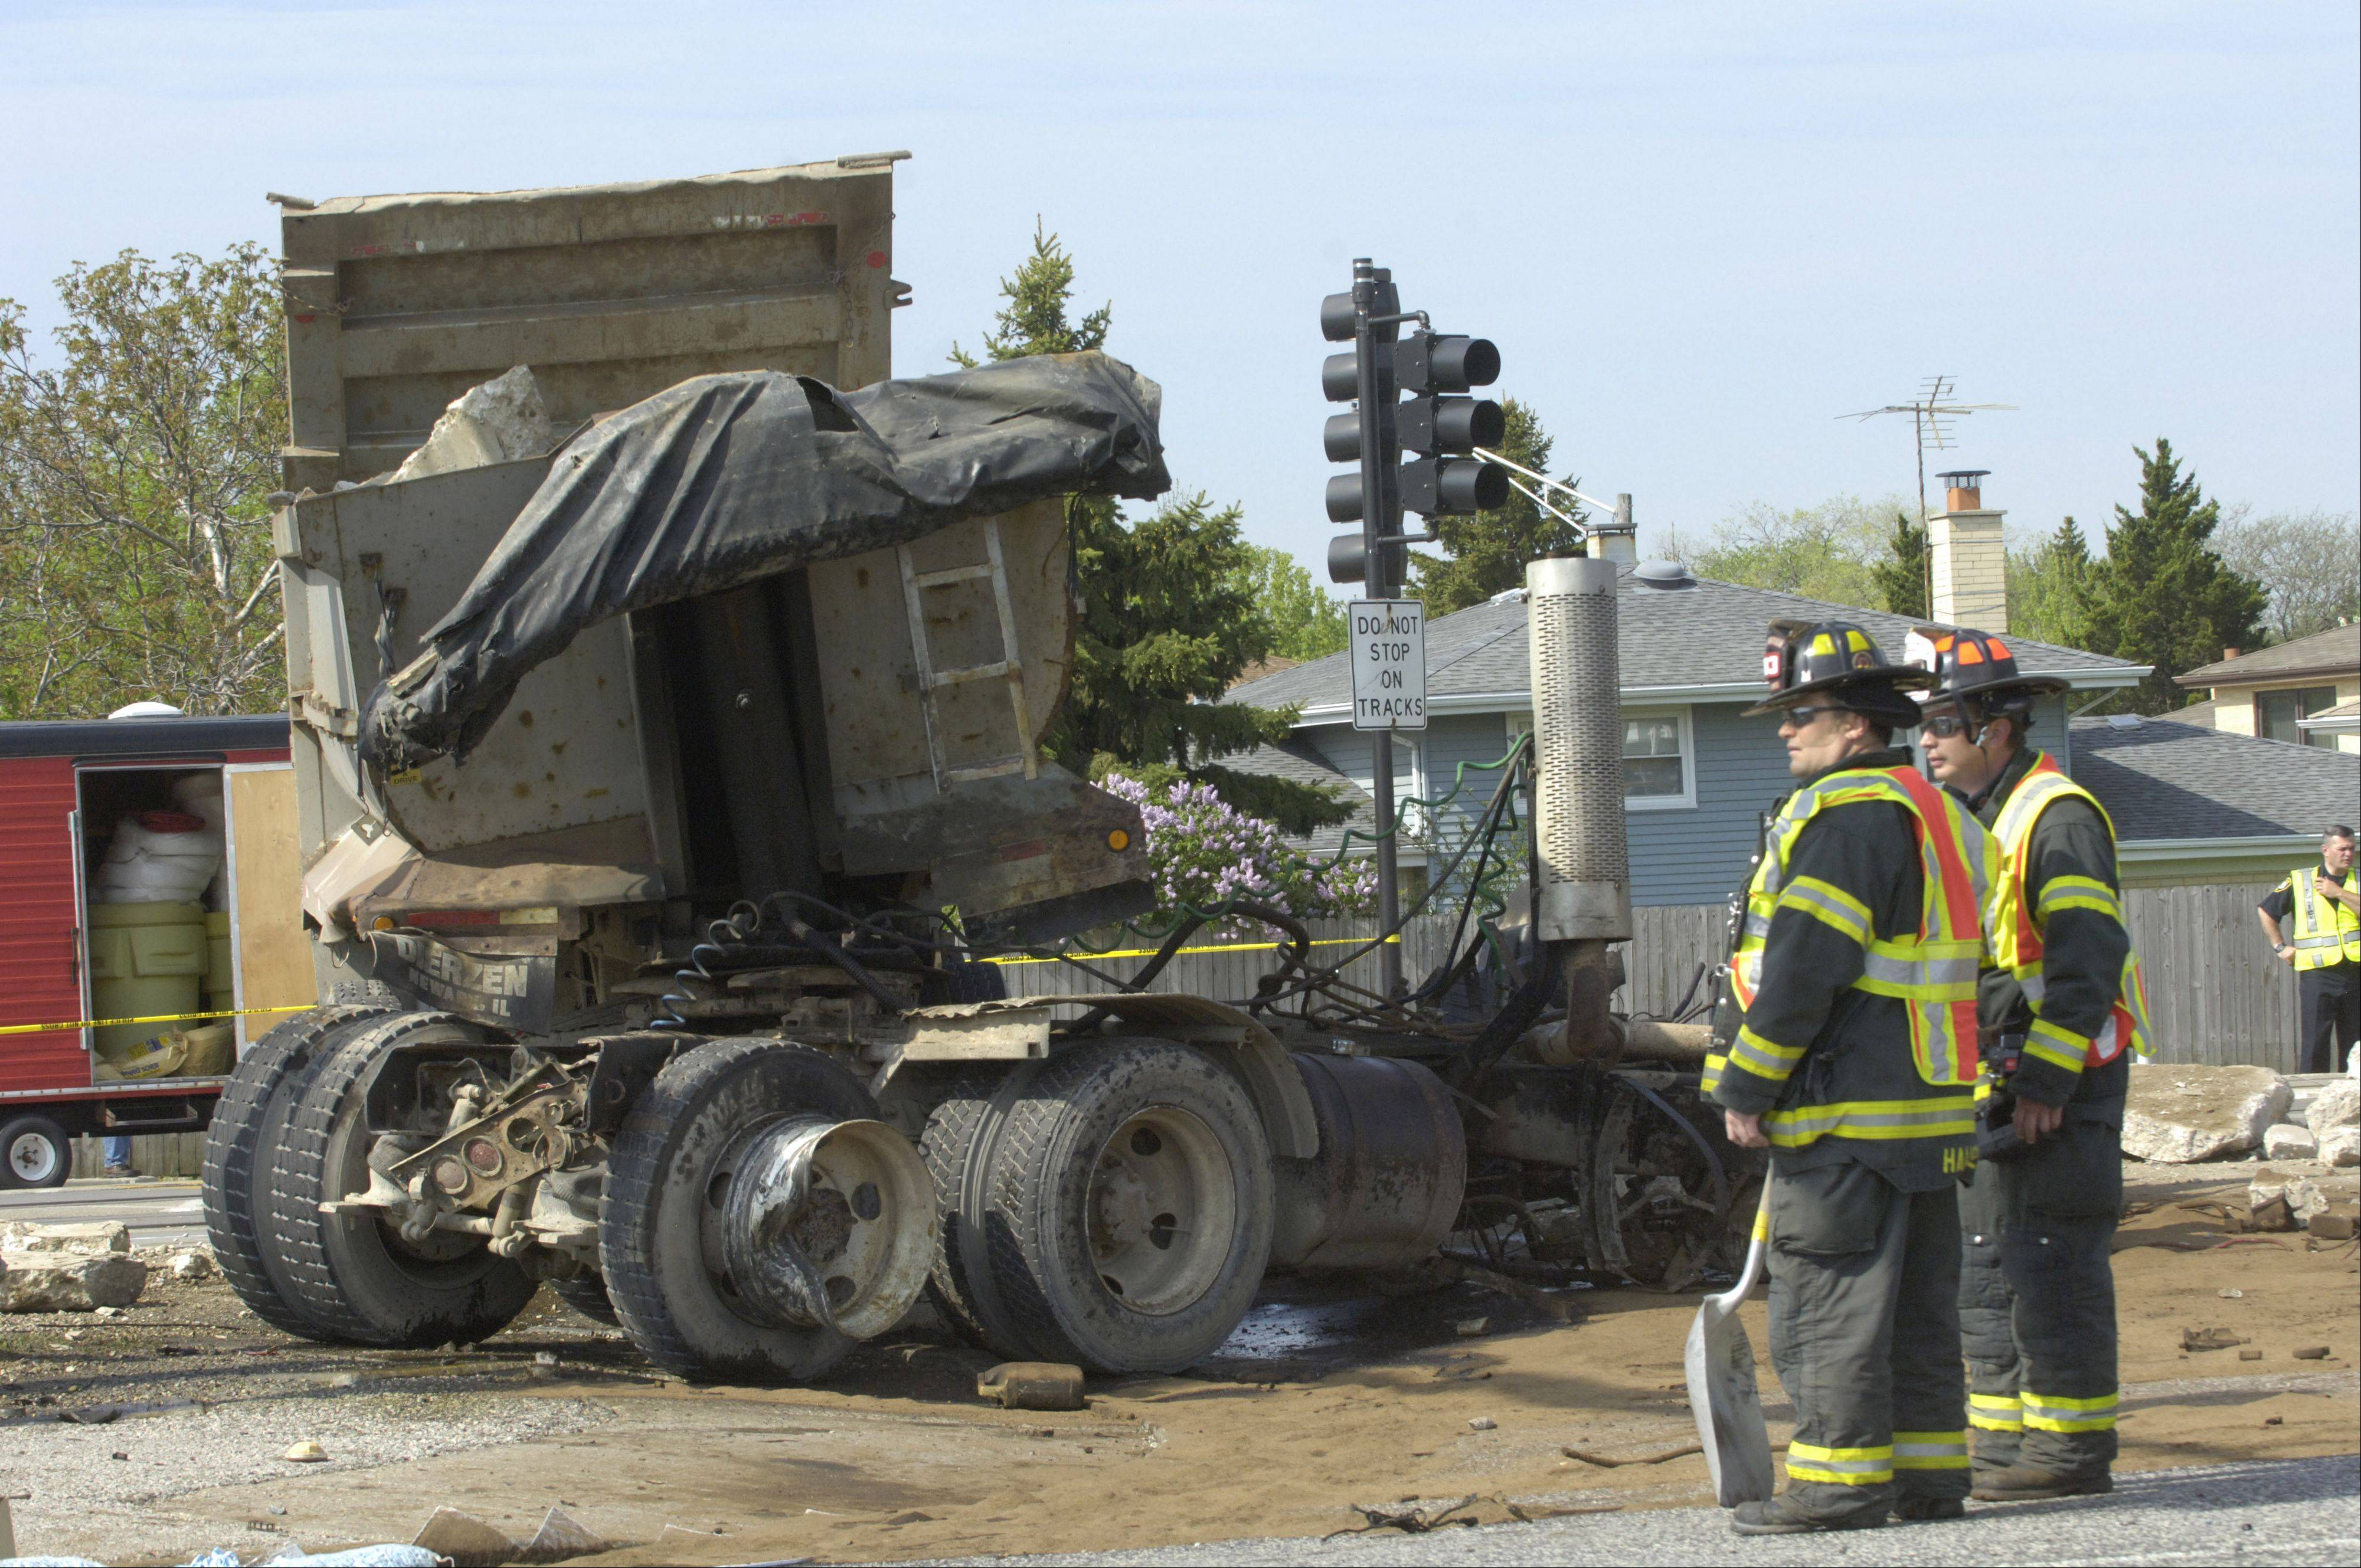 Firefighters investigate near the wreckage of a dump truck whose driver went around a gate and collided with a Metra train in May 2011 in Mount Prospect.